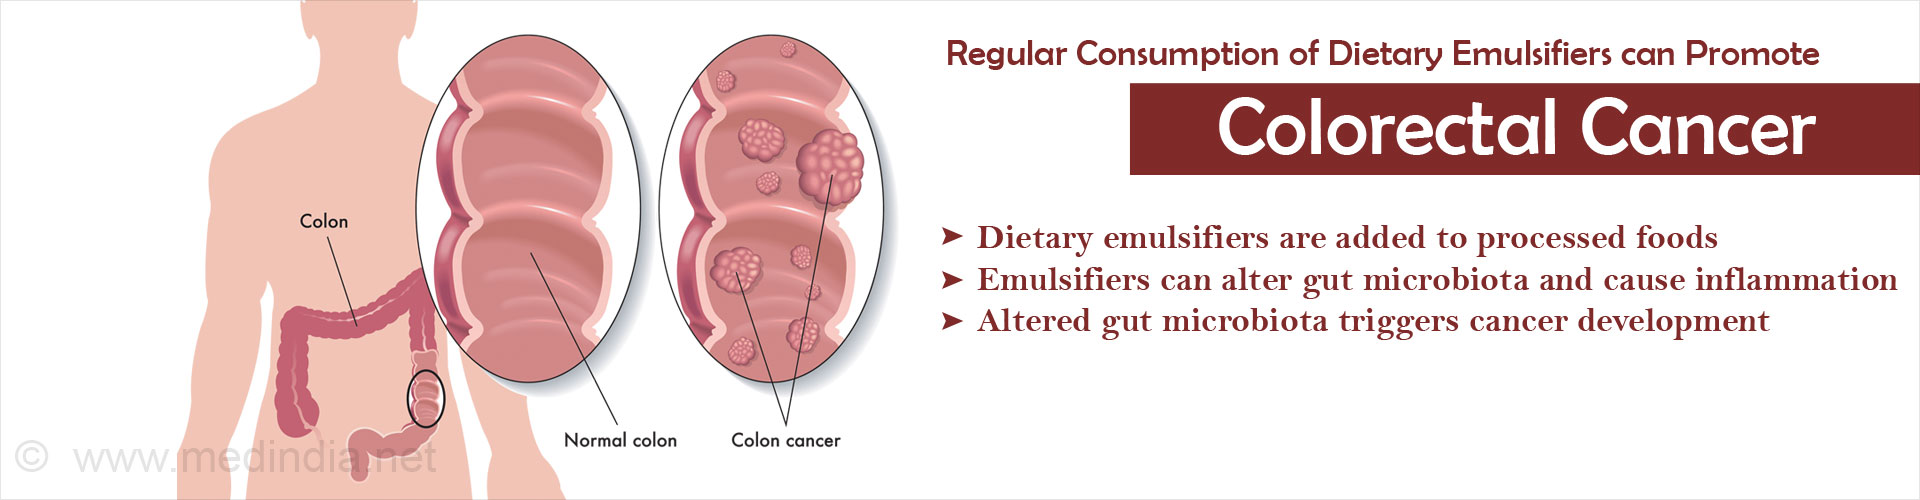 Common Emulsifiers Used as Food Additives may Promote Colon Cancer